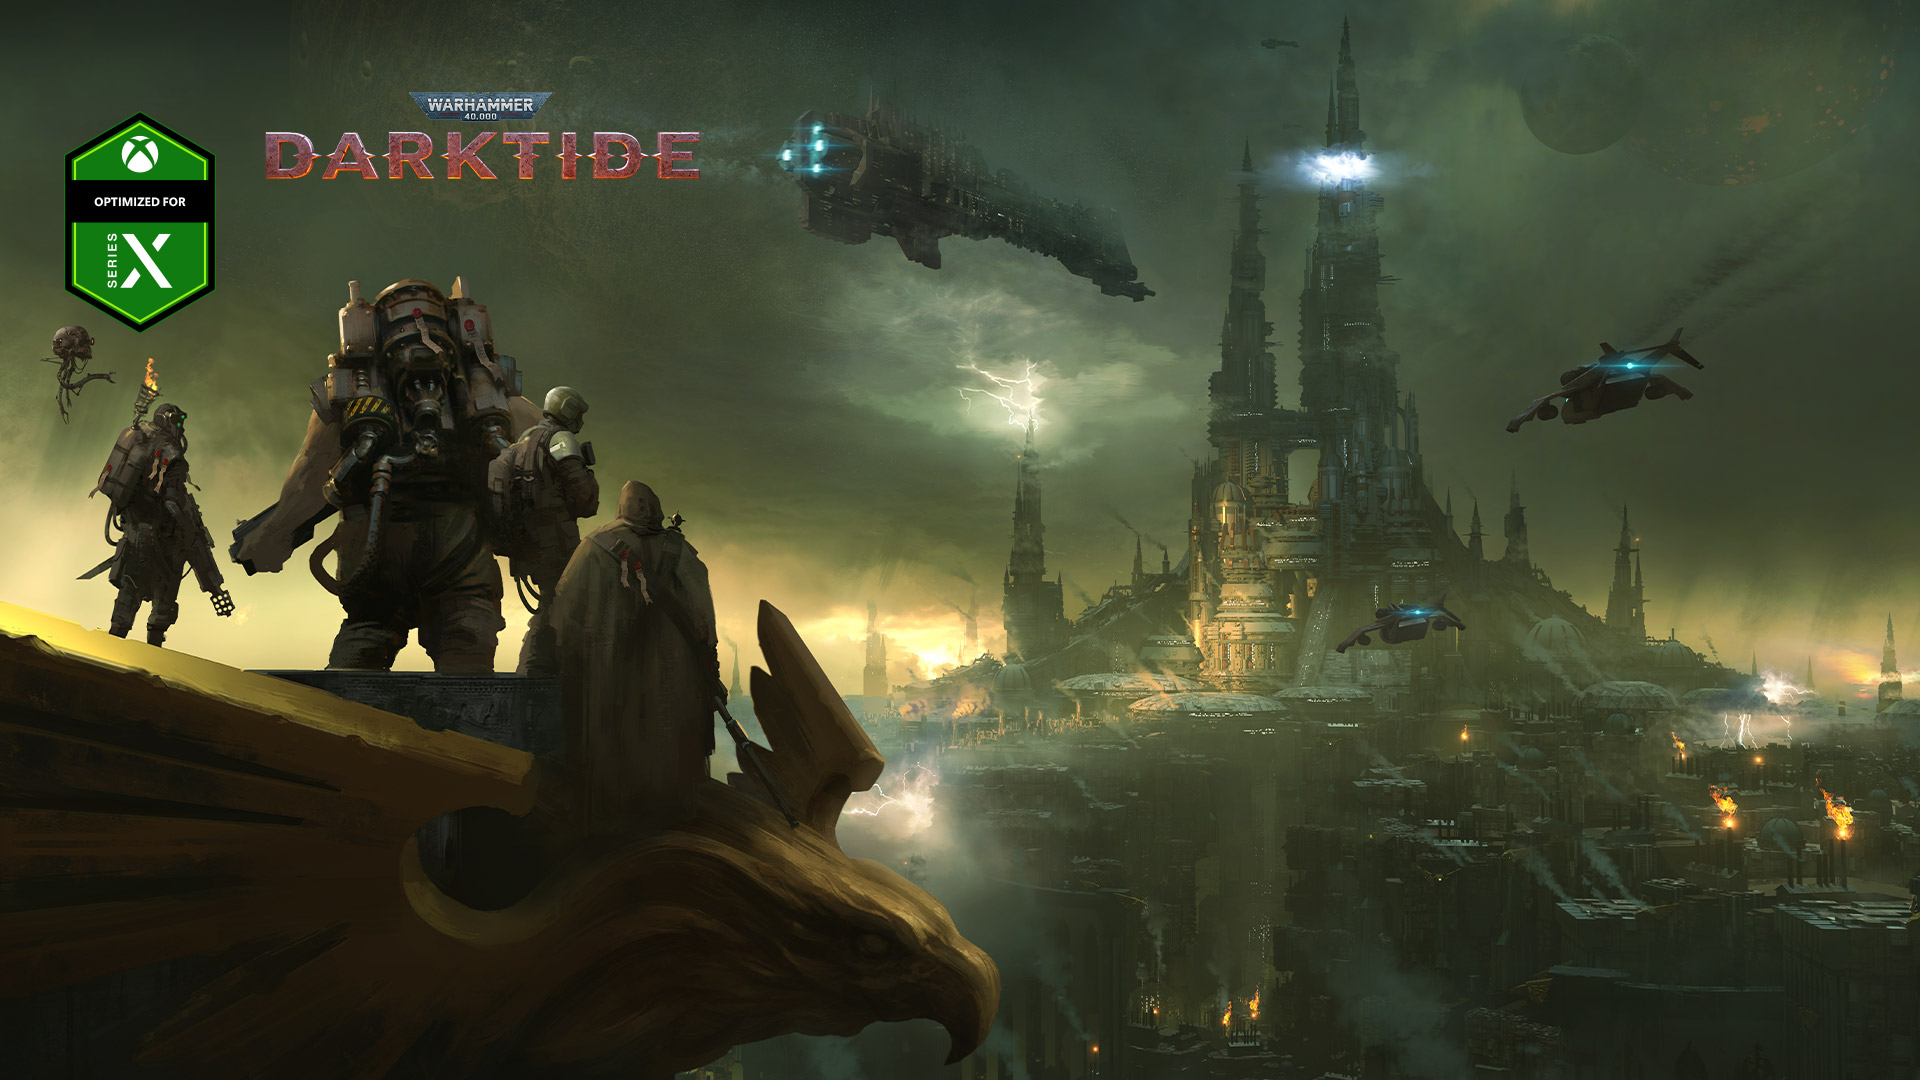 Optimized for Series X, Warhammer 40,000 Darktide, a group of characters overlook a city shrouded in fog.